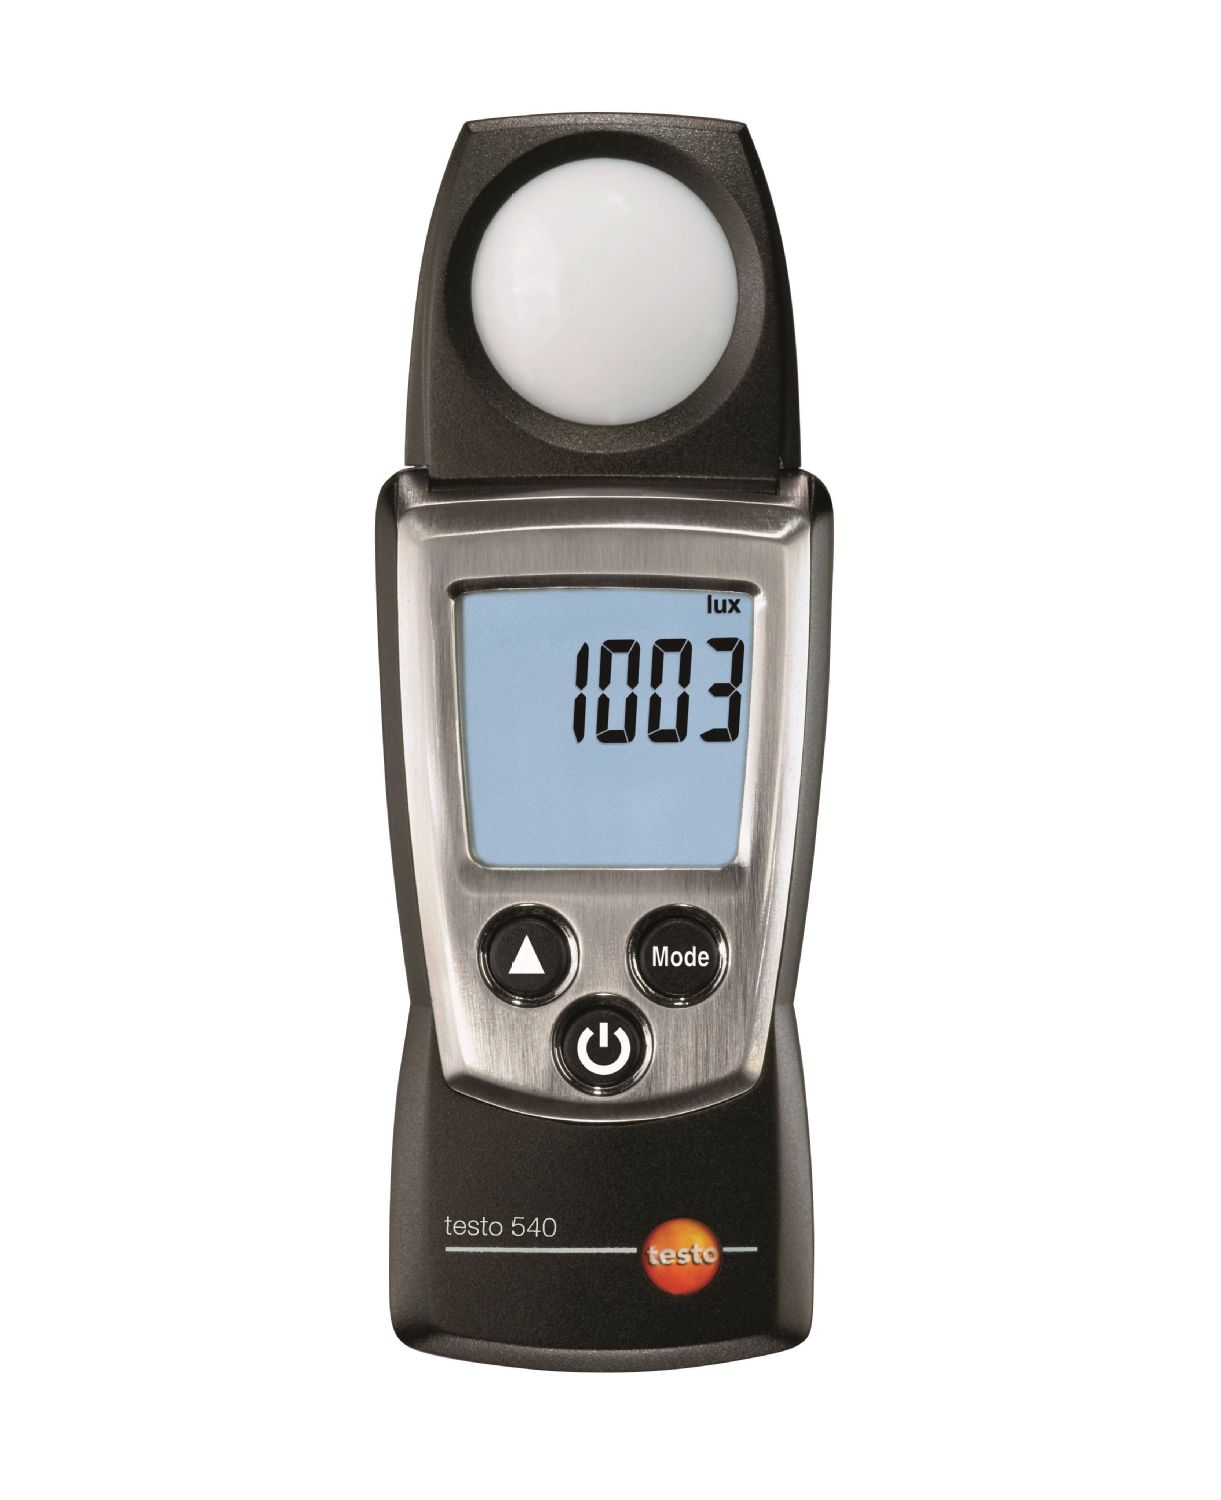 testo-540-light-measuring-instrument.jpg